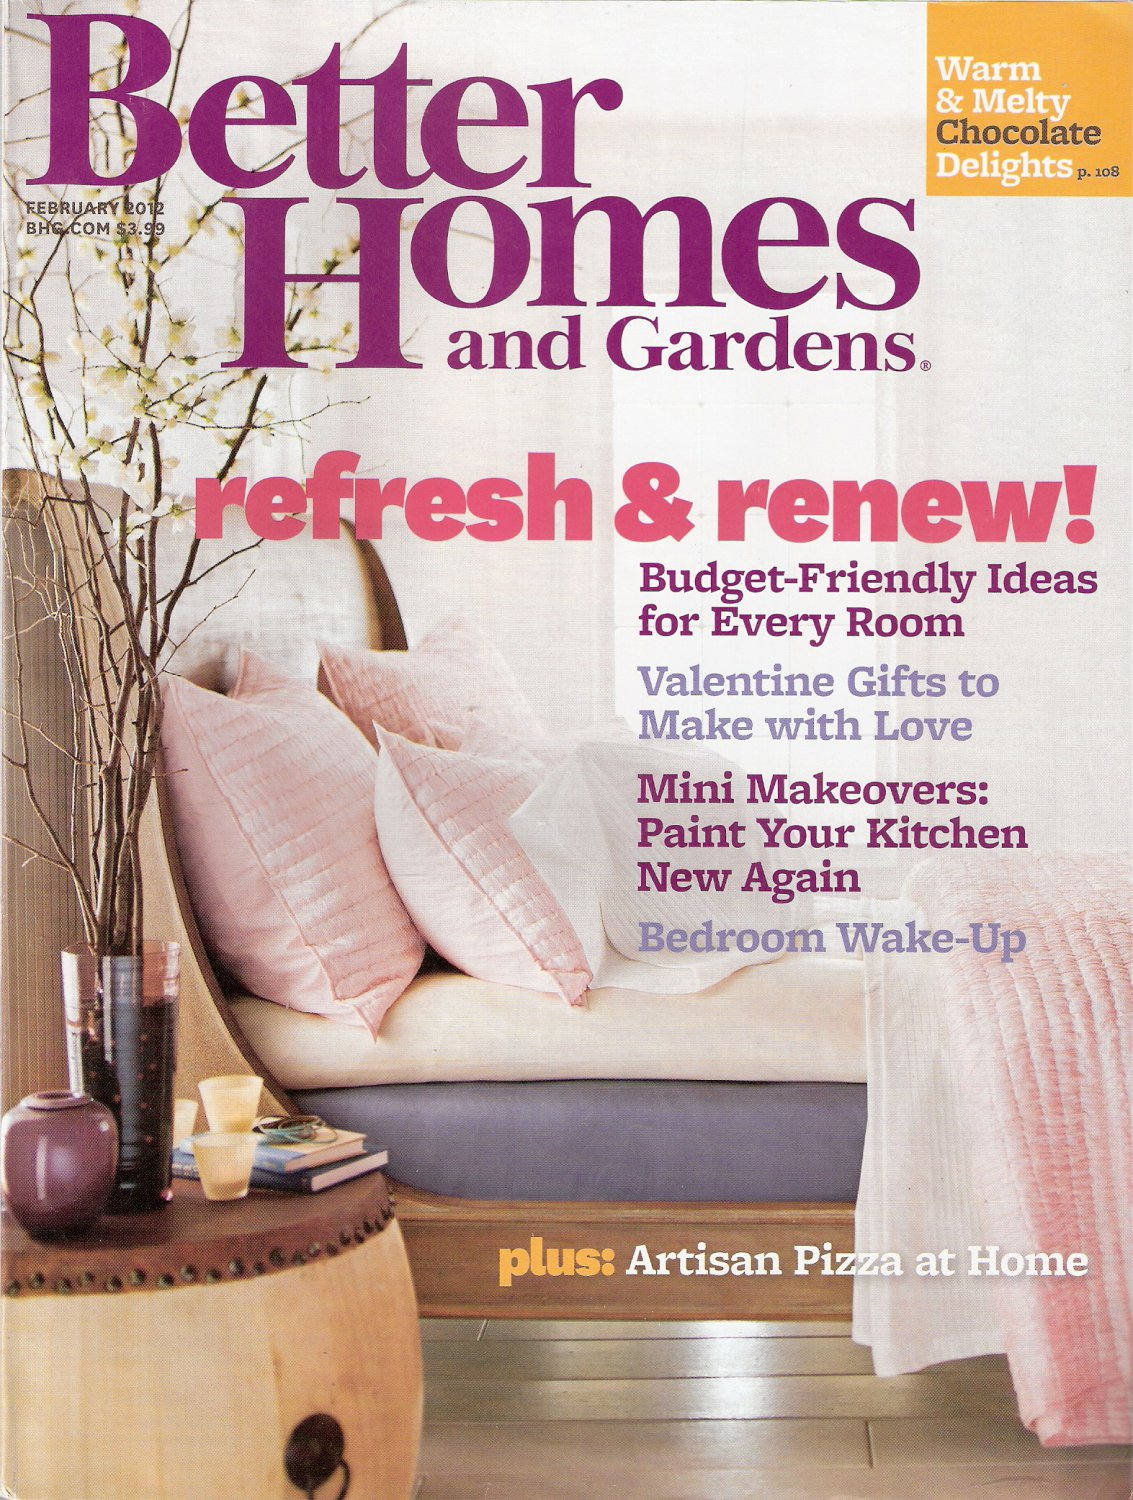 Better Homes and Gardens Magazine February 2012 Refresh and Renew